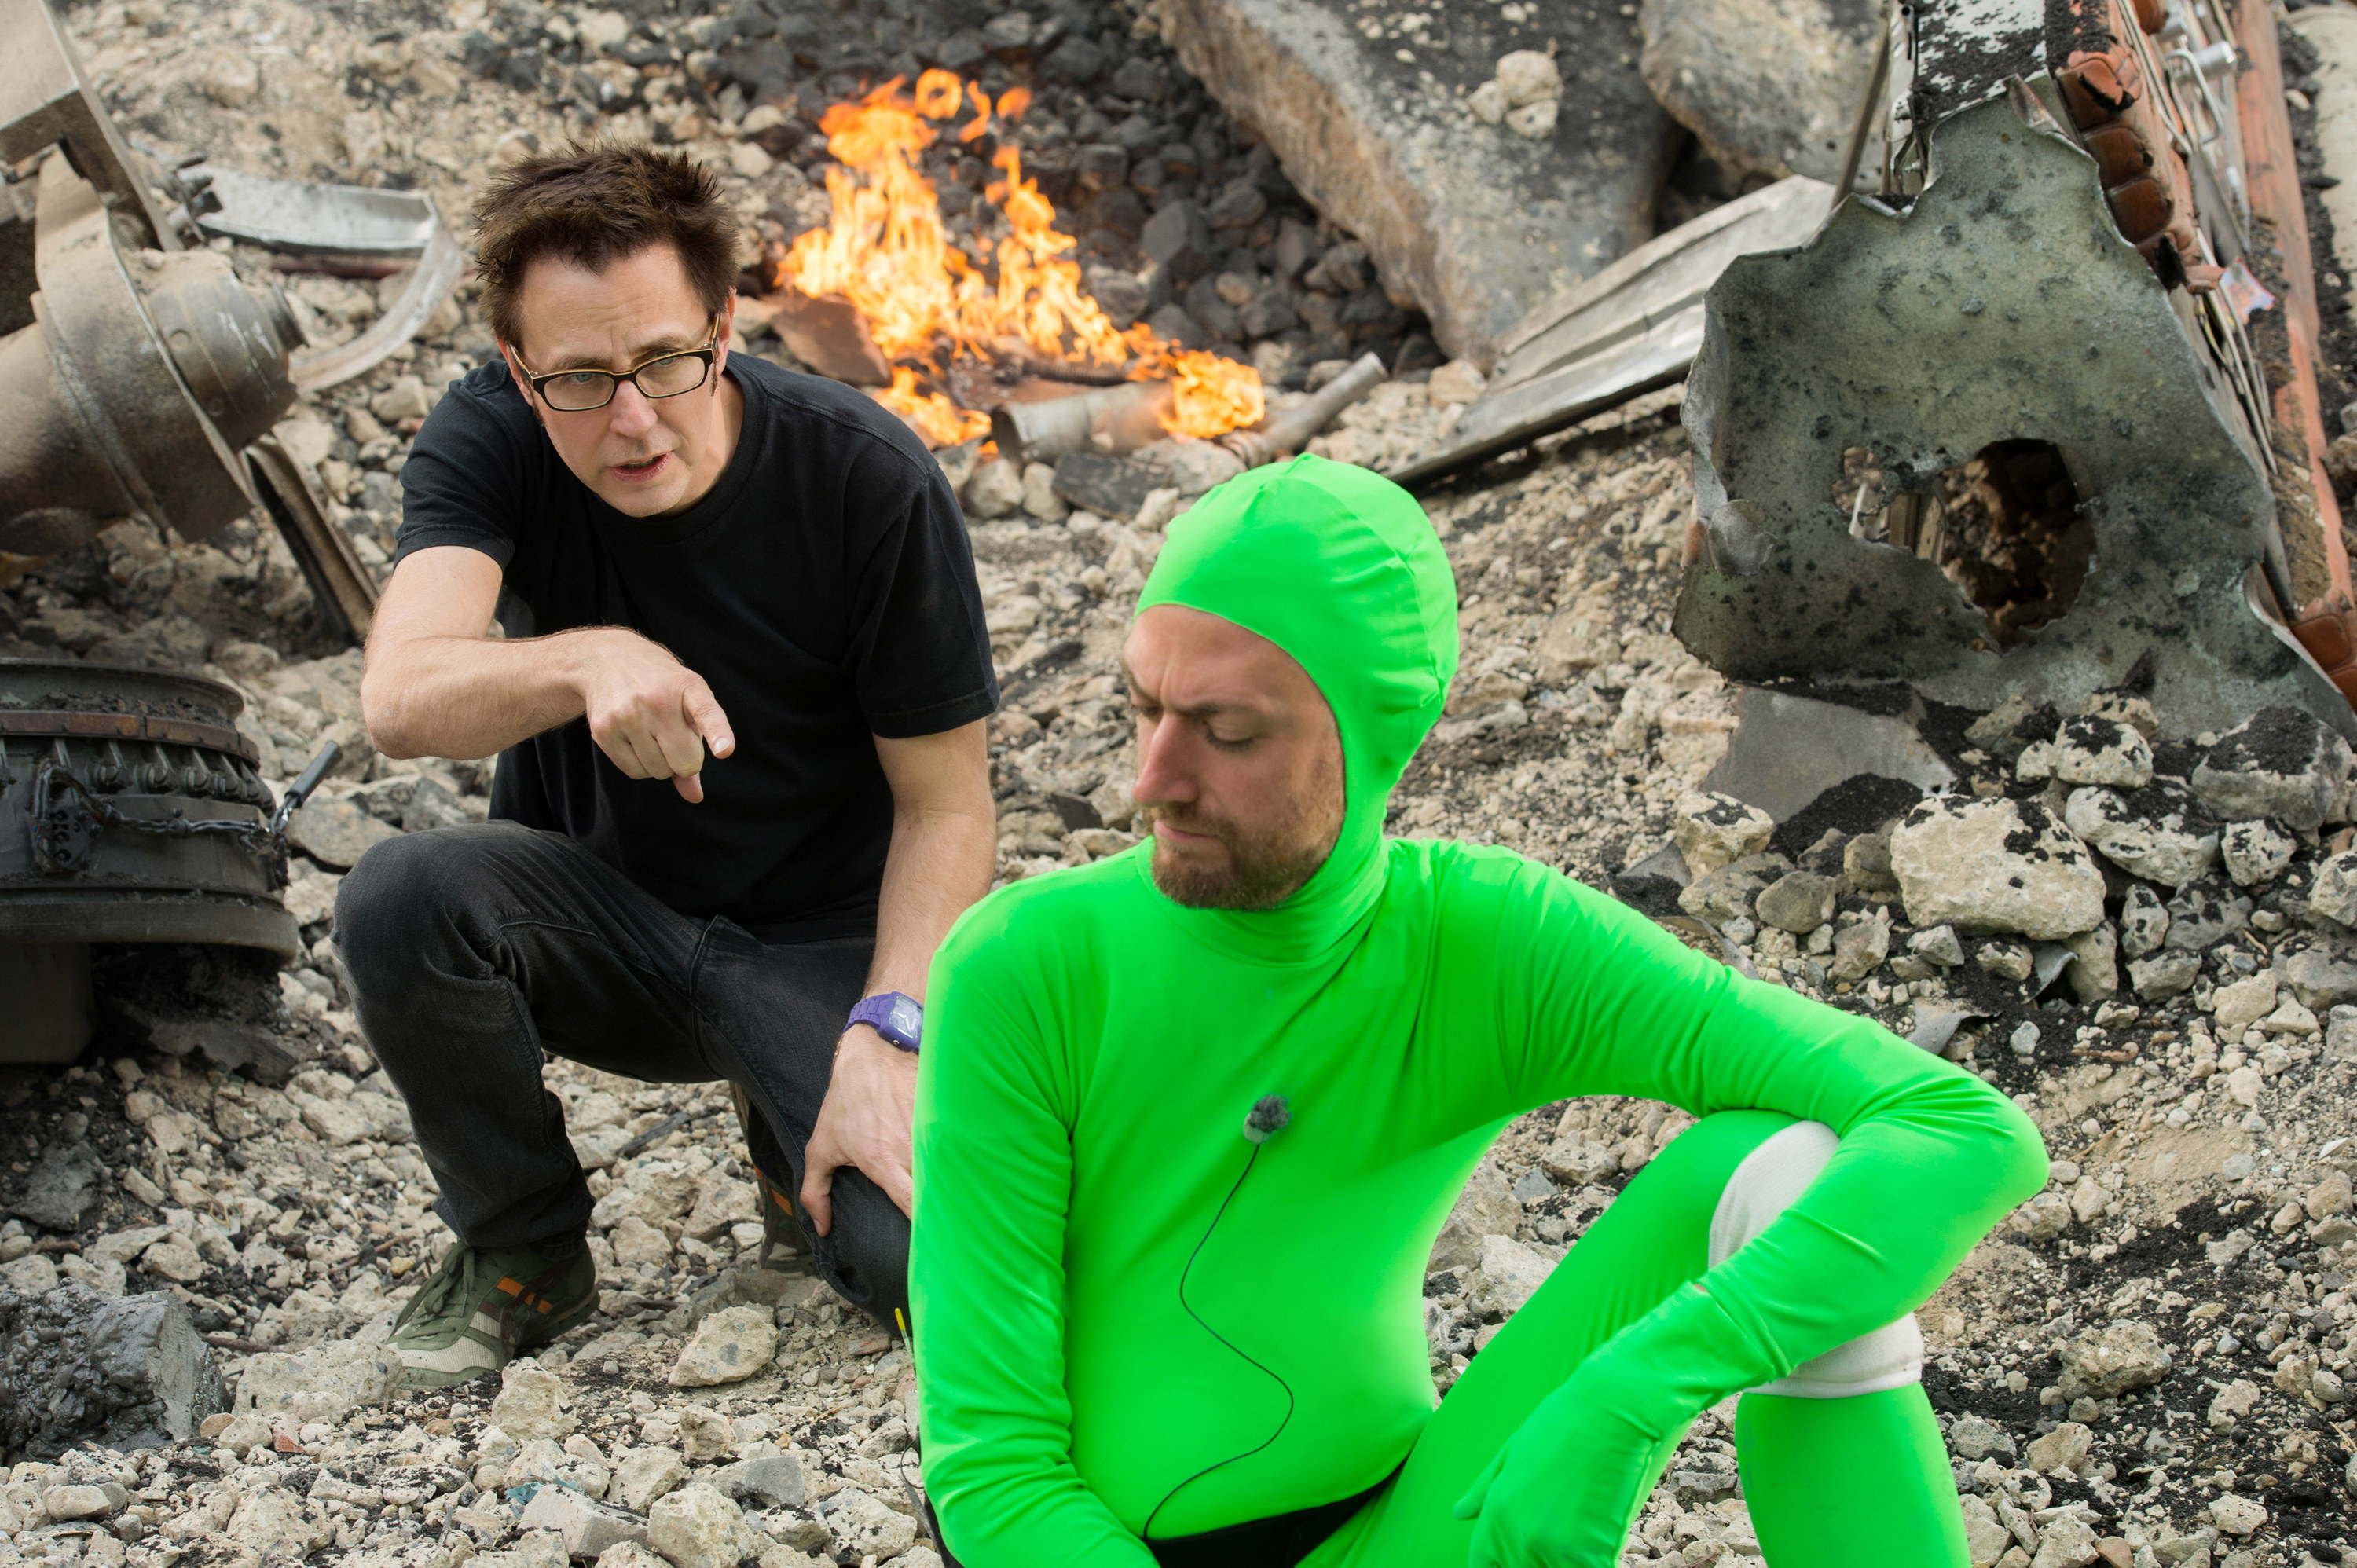 Jamescrouches down on a pile of rubble while directing an actor in a green screen suit